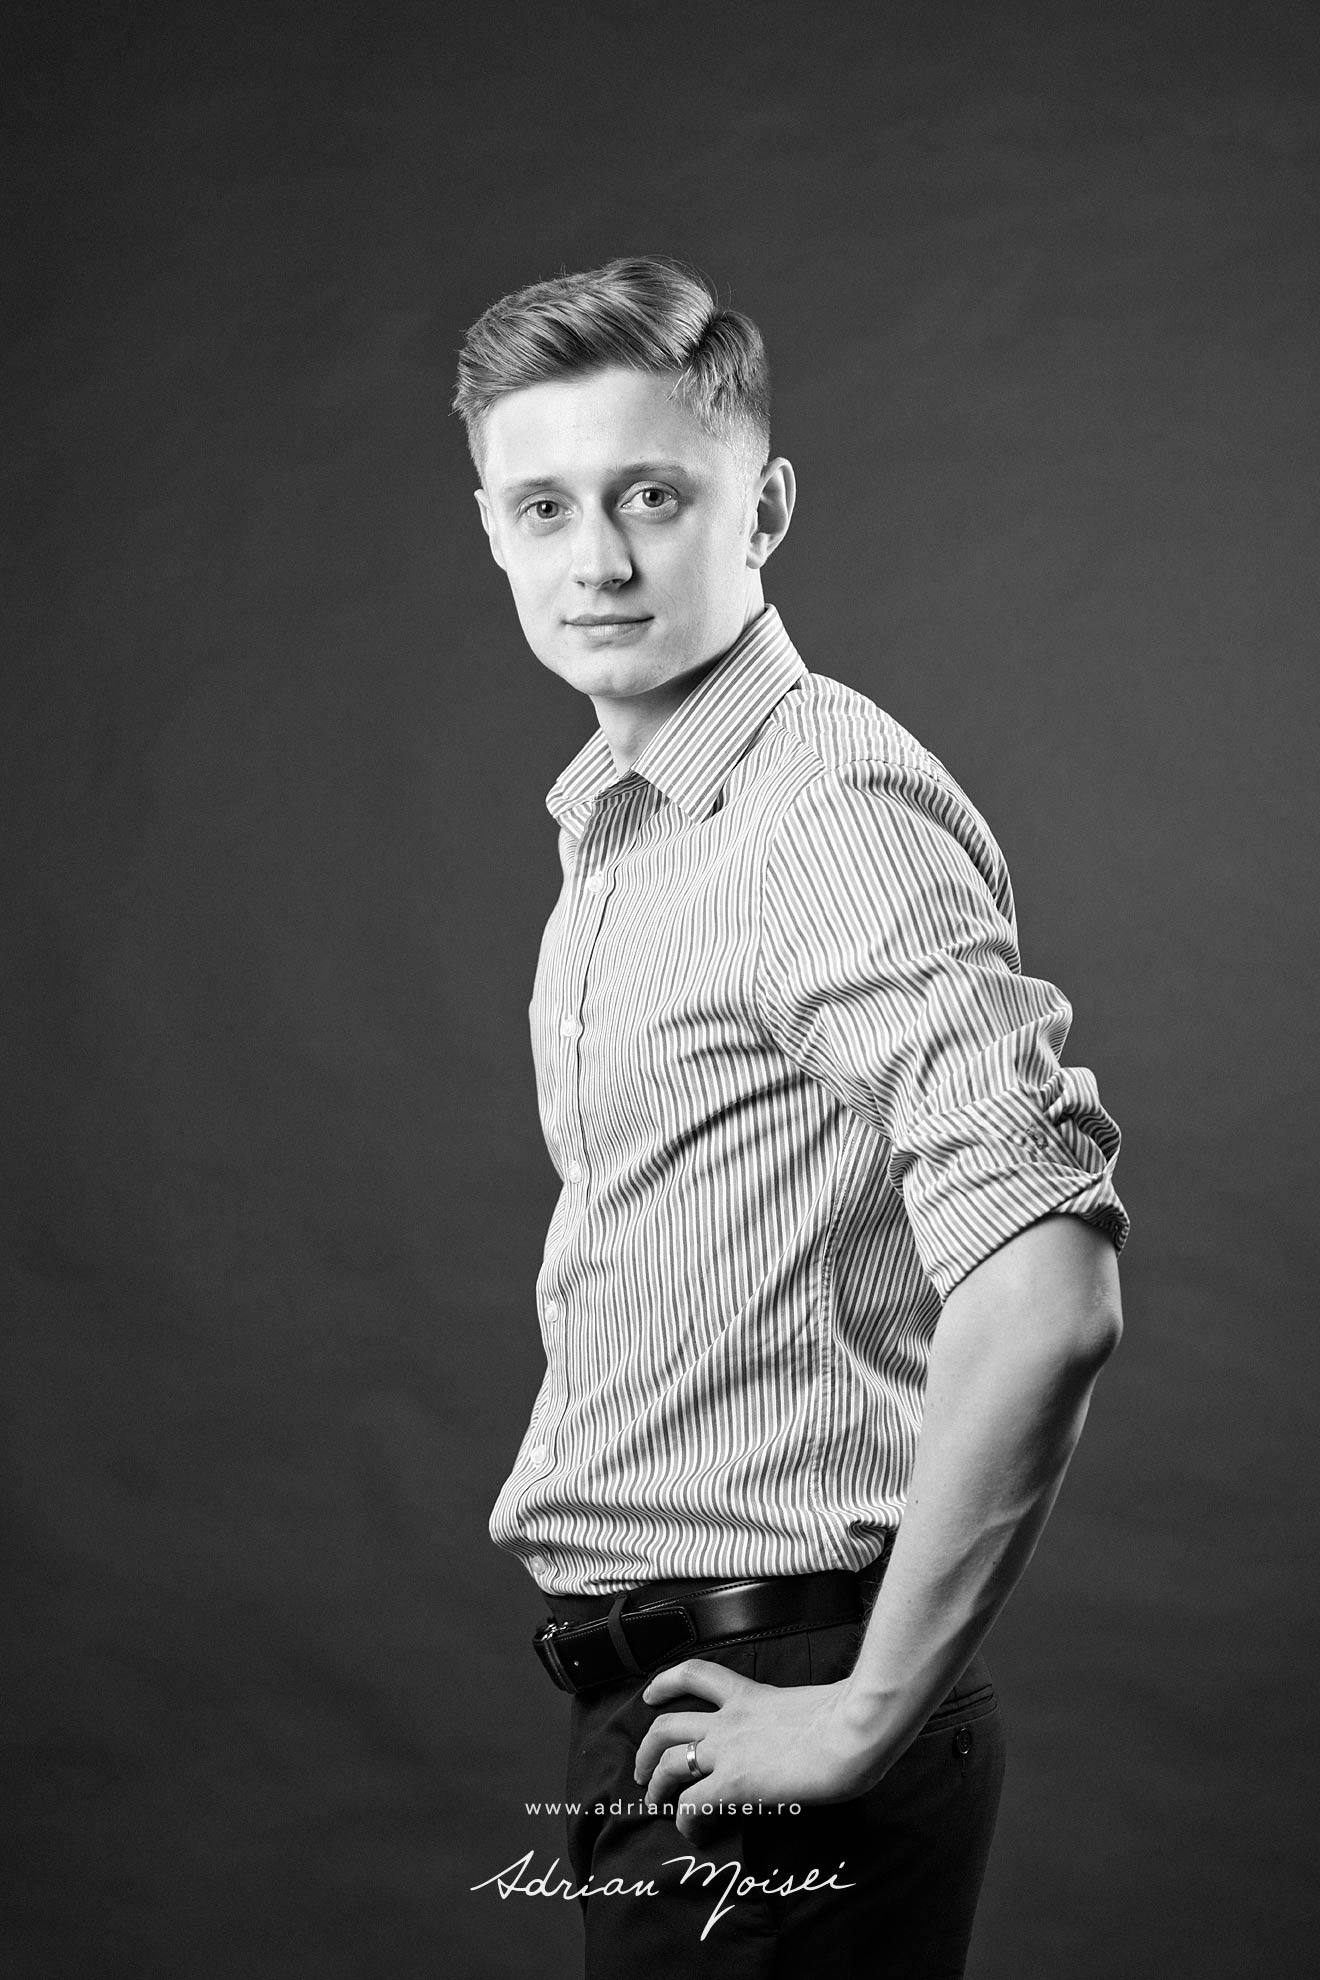 Corporate headshots Iasi studio foto Adrian Moisei